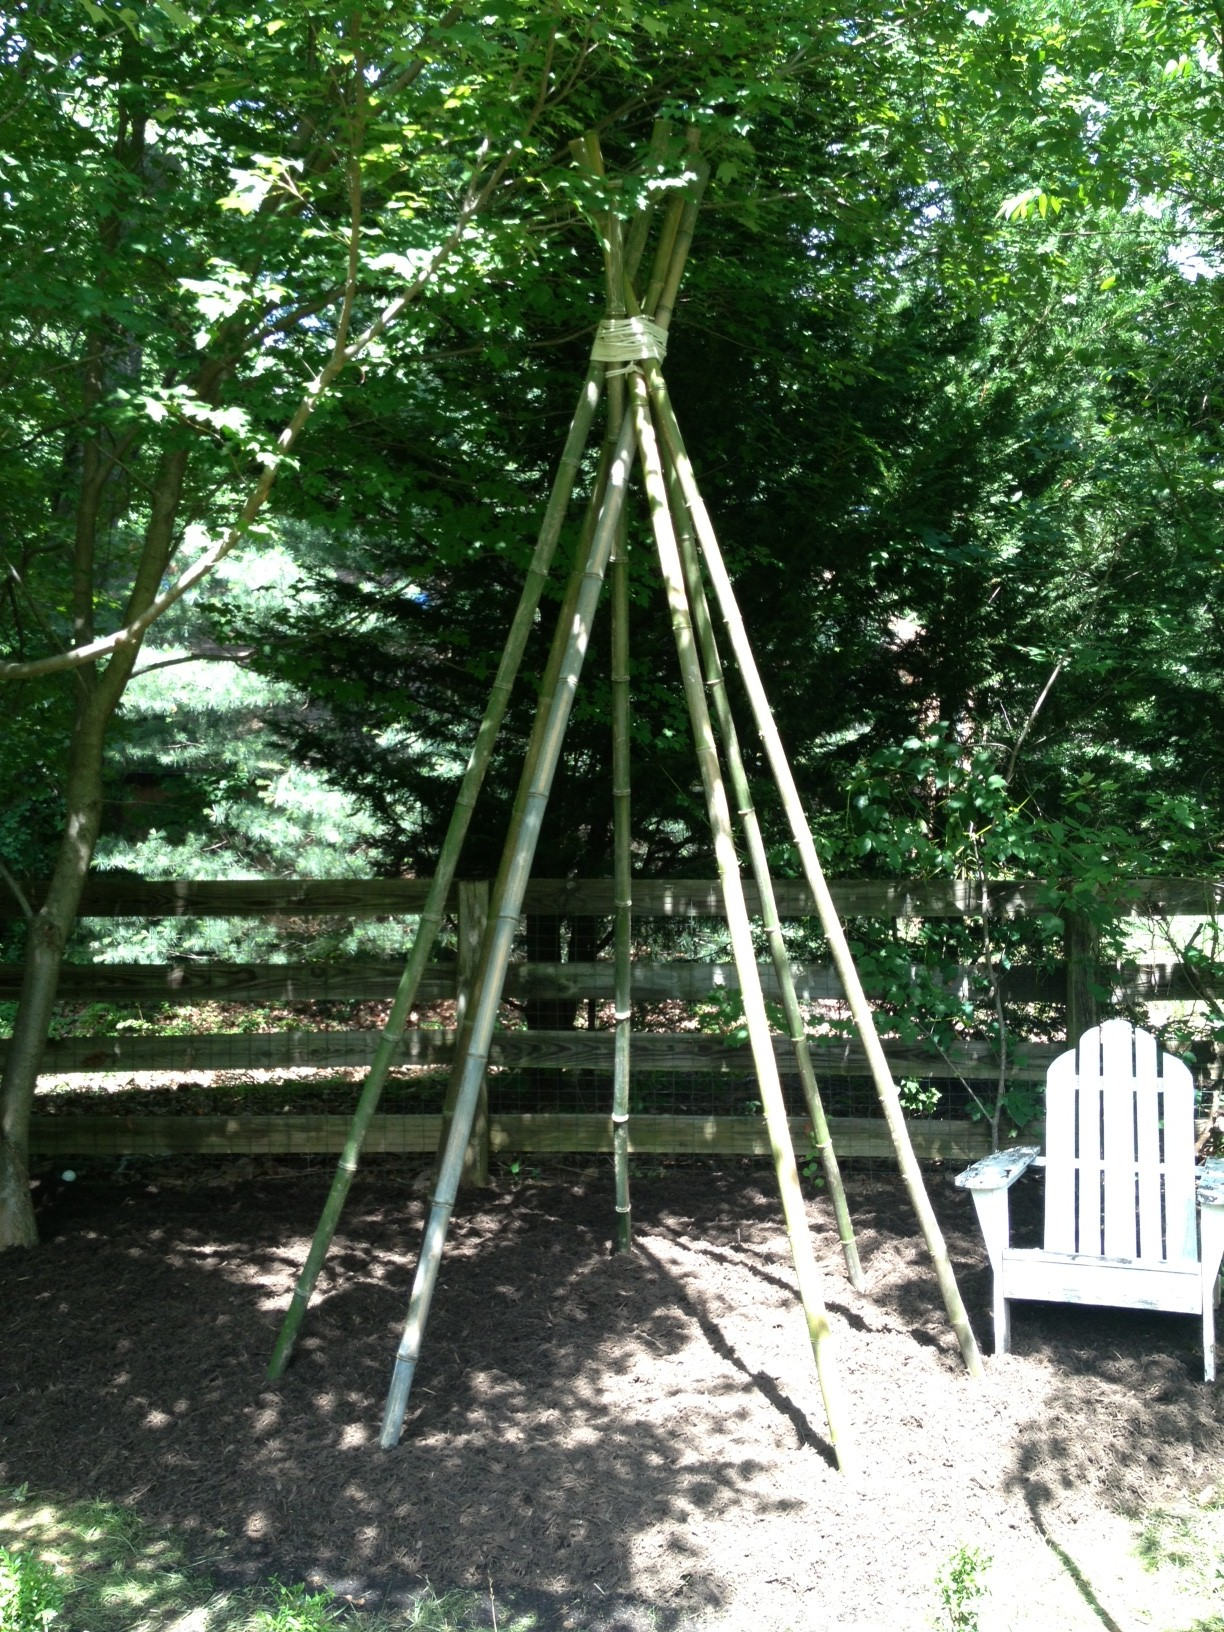 Vine teepee - a fun hiding place for the kids!